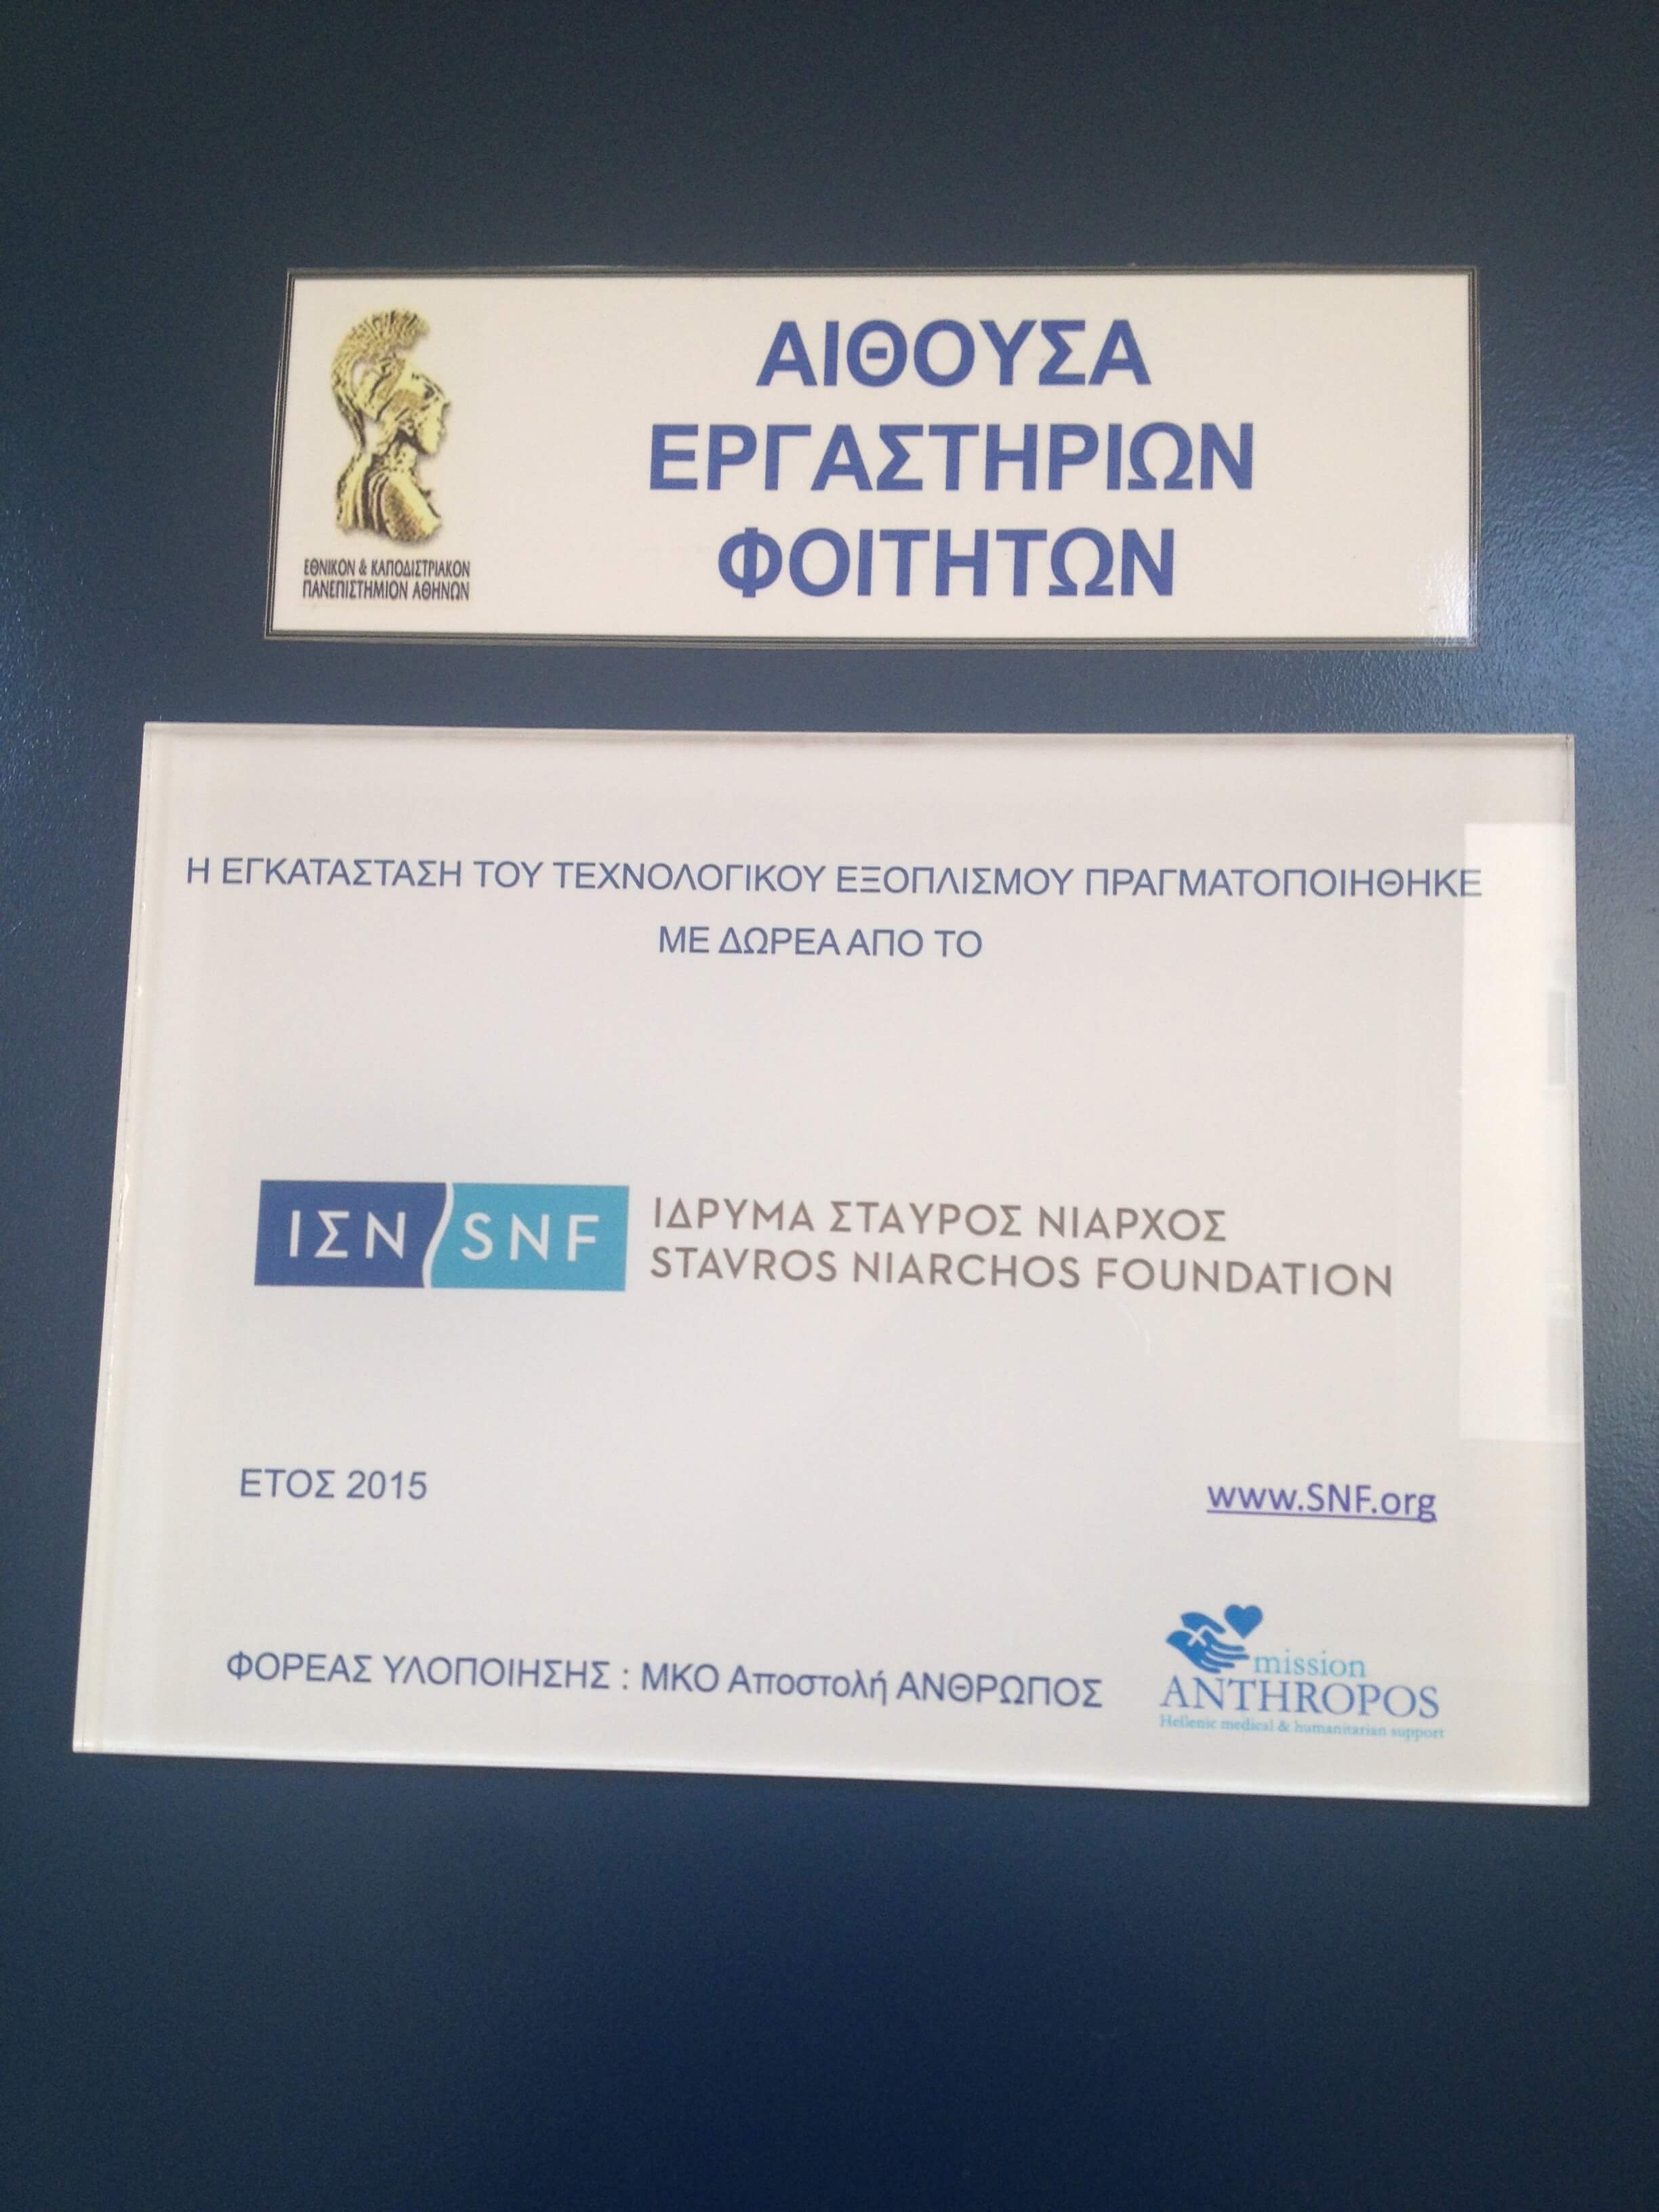 Donation of Training Equipment to the Laboratory of Histology and Embryology, National and Kapodistrian University of Athens Medical School